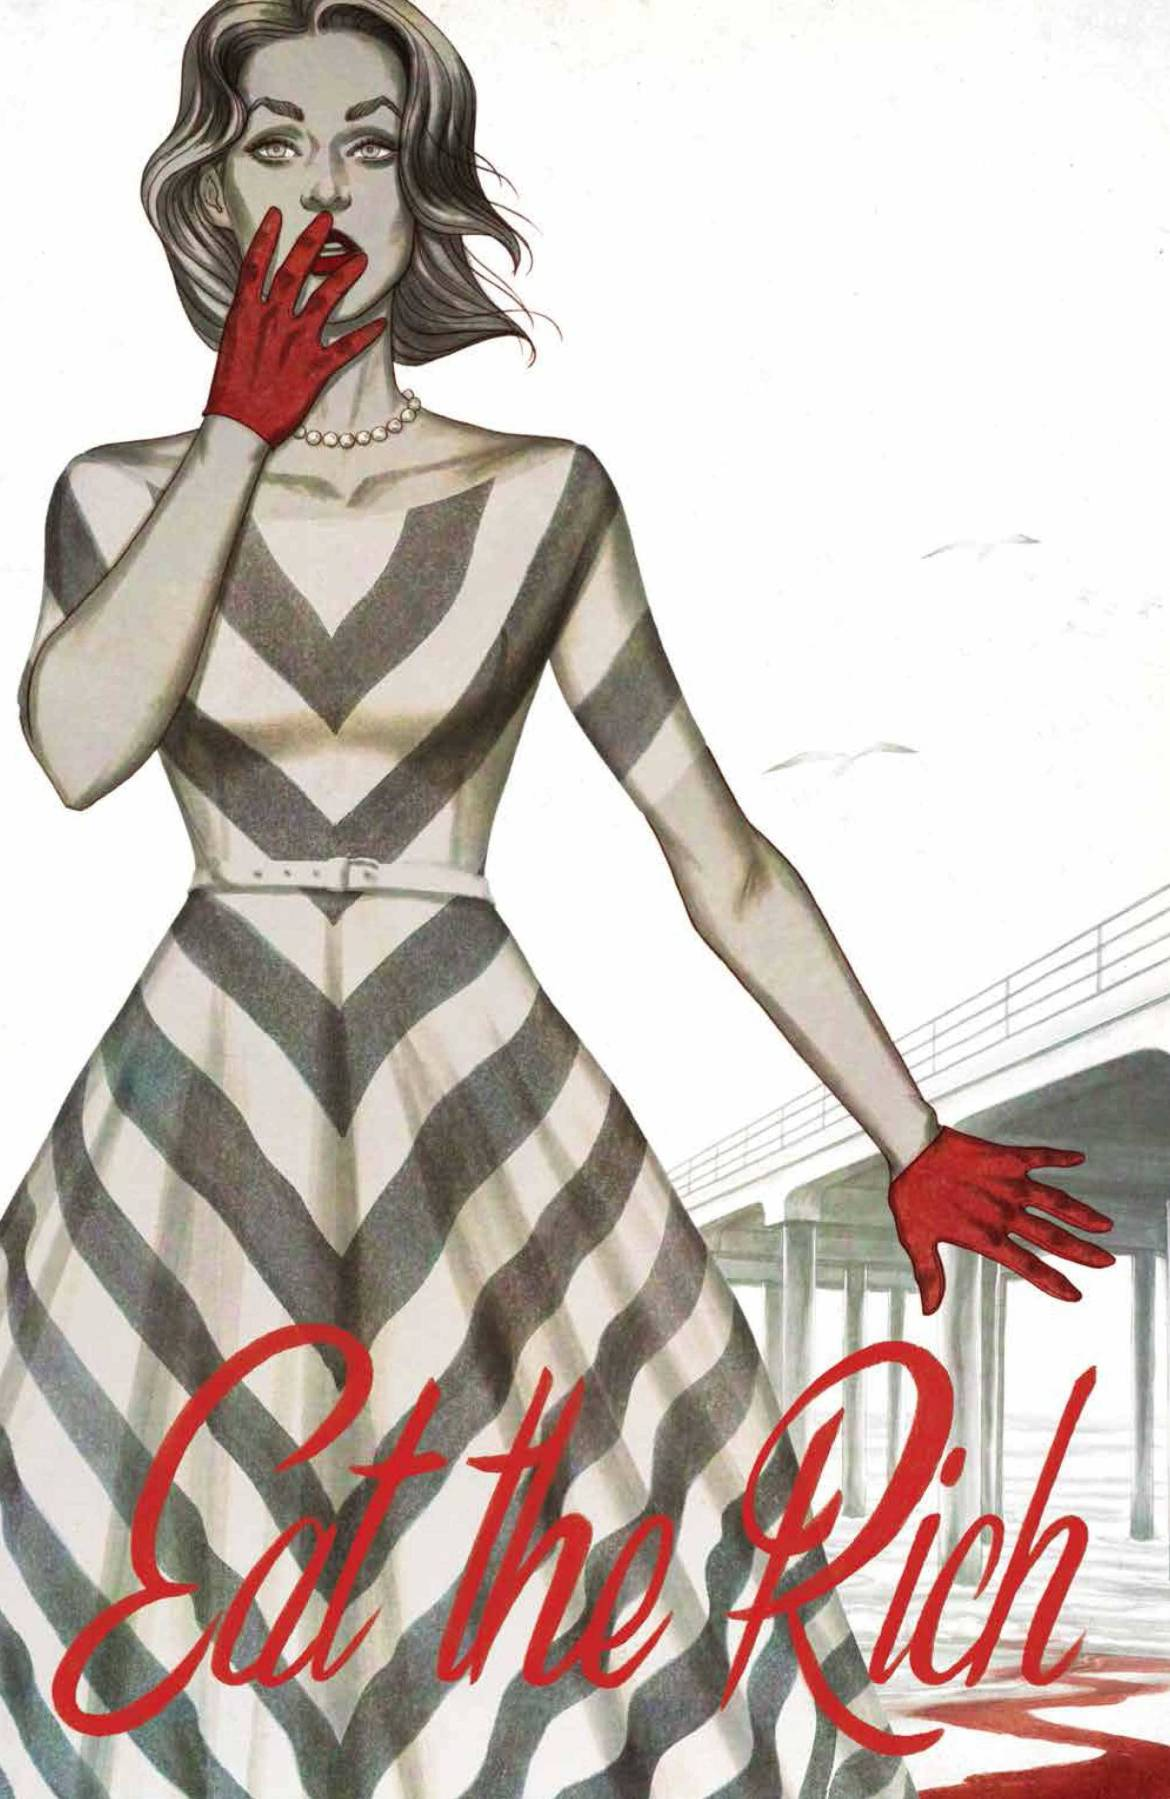 STL193841 ComicList Previews: EAT THE RICH #1 (OF 5)